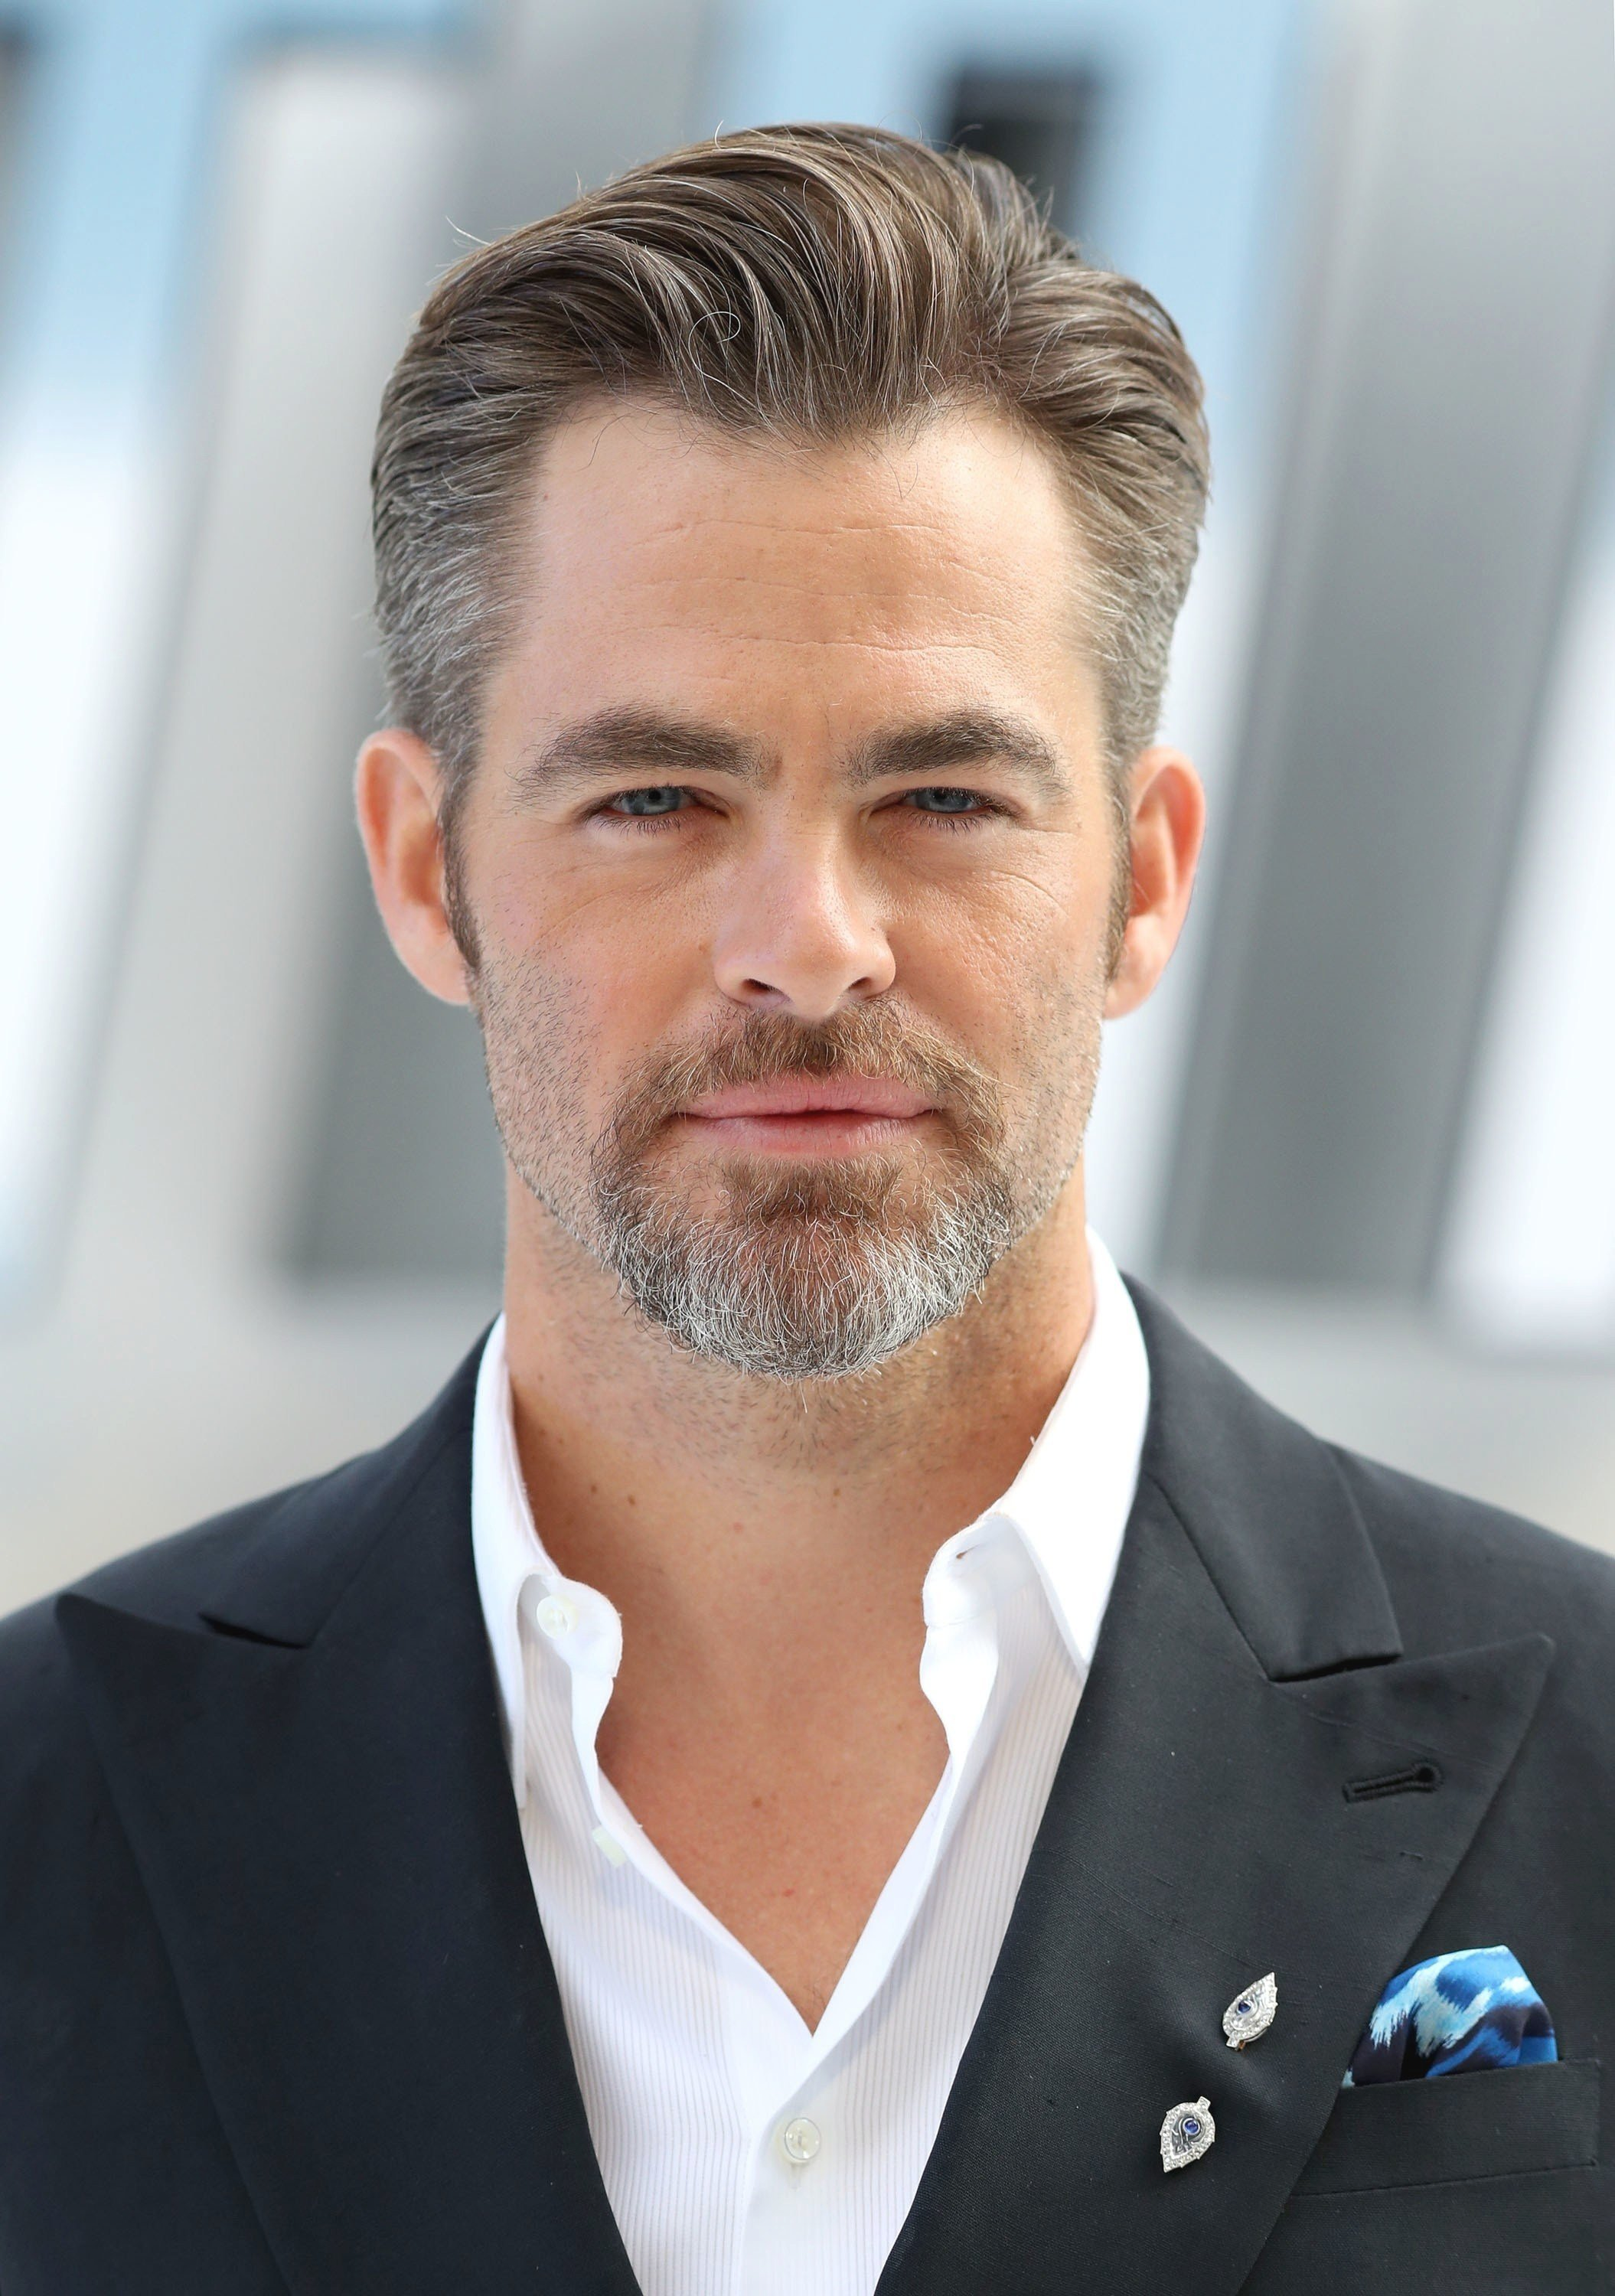 The Best Male Celebrity Hairstyles Fade Haircut Pictures